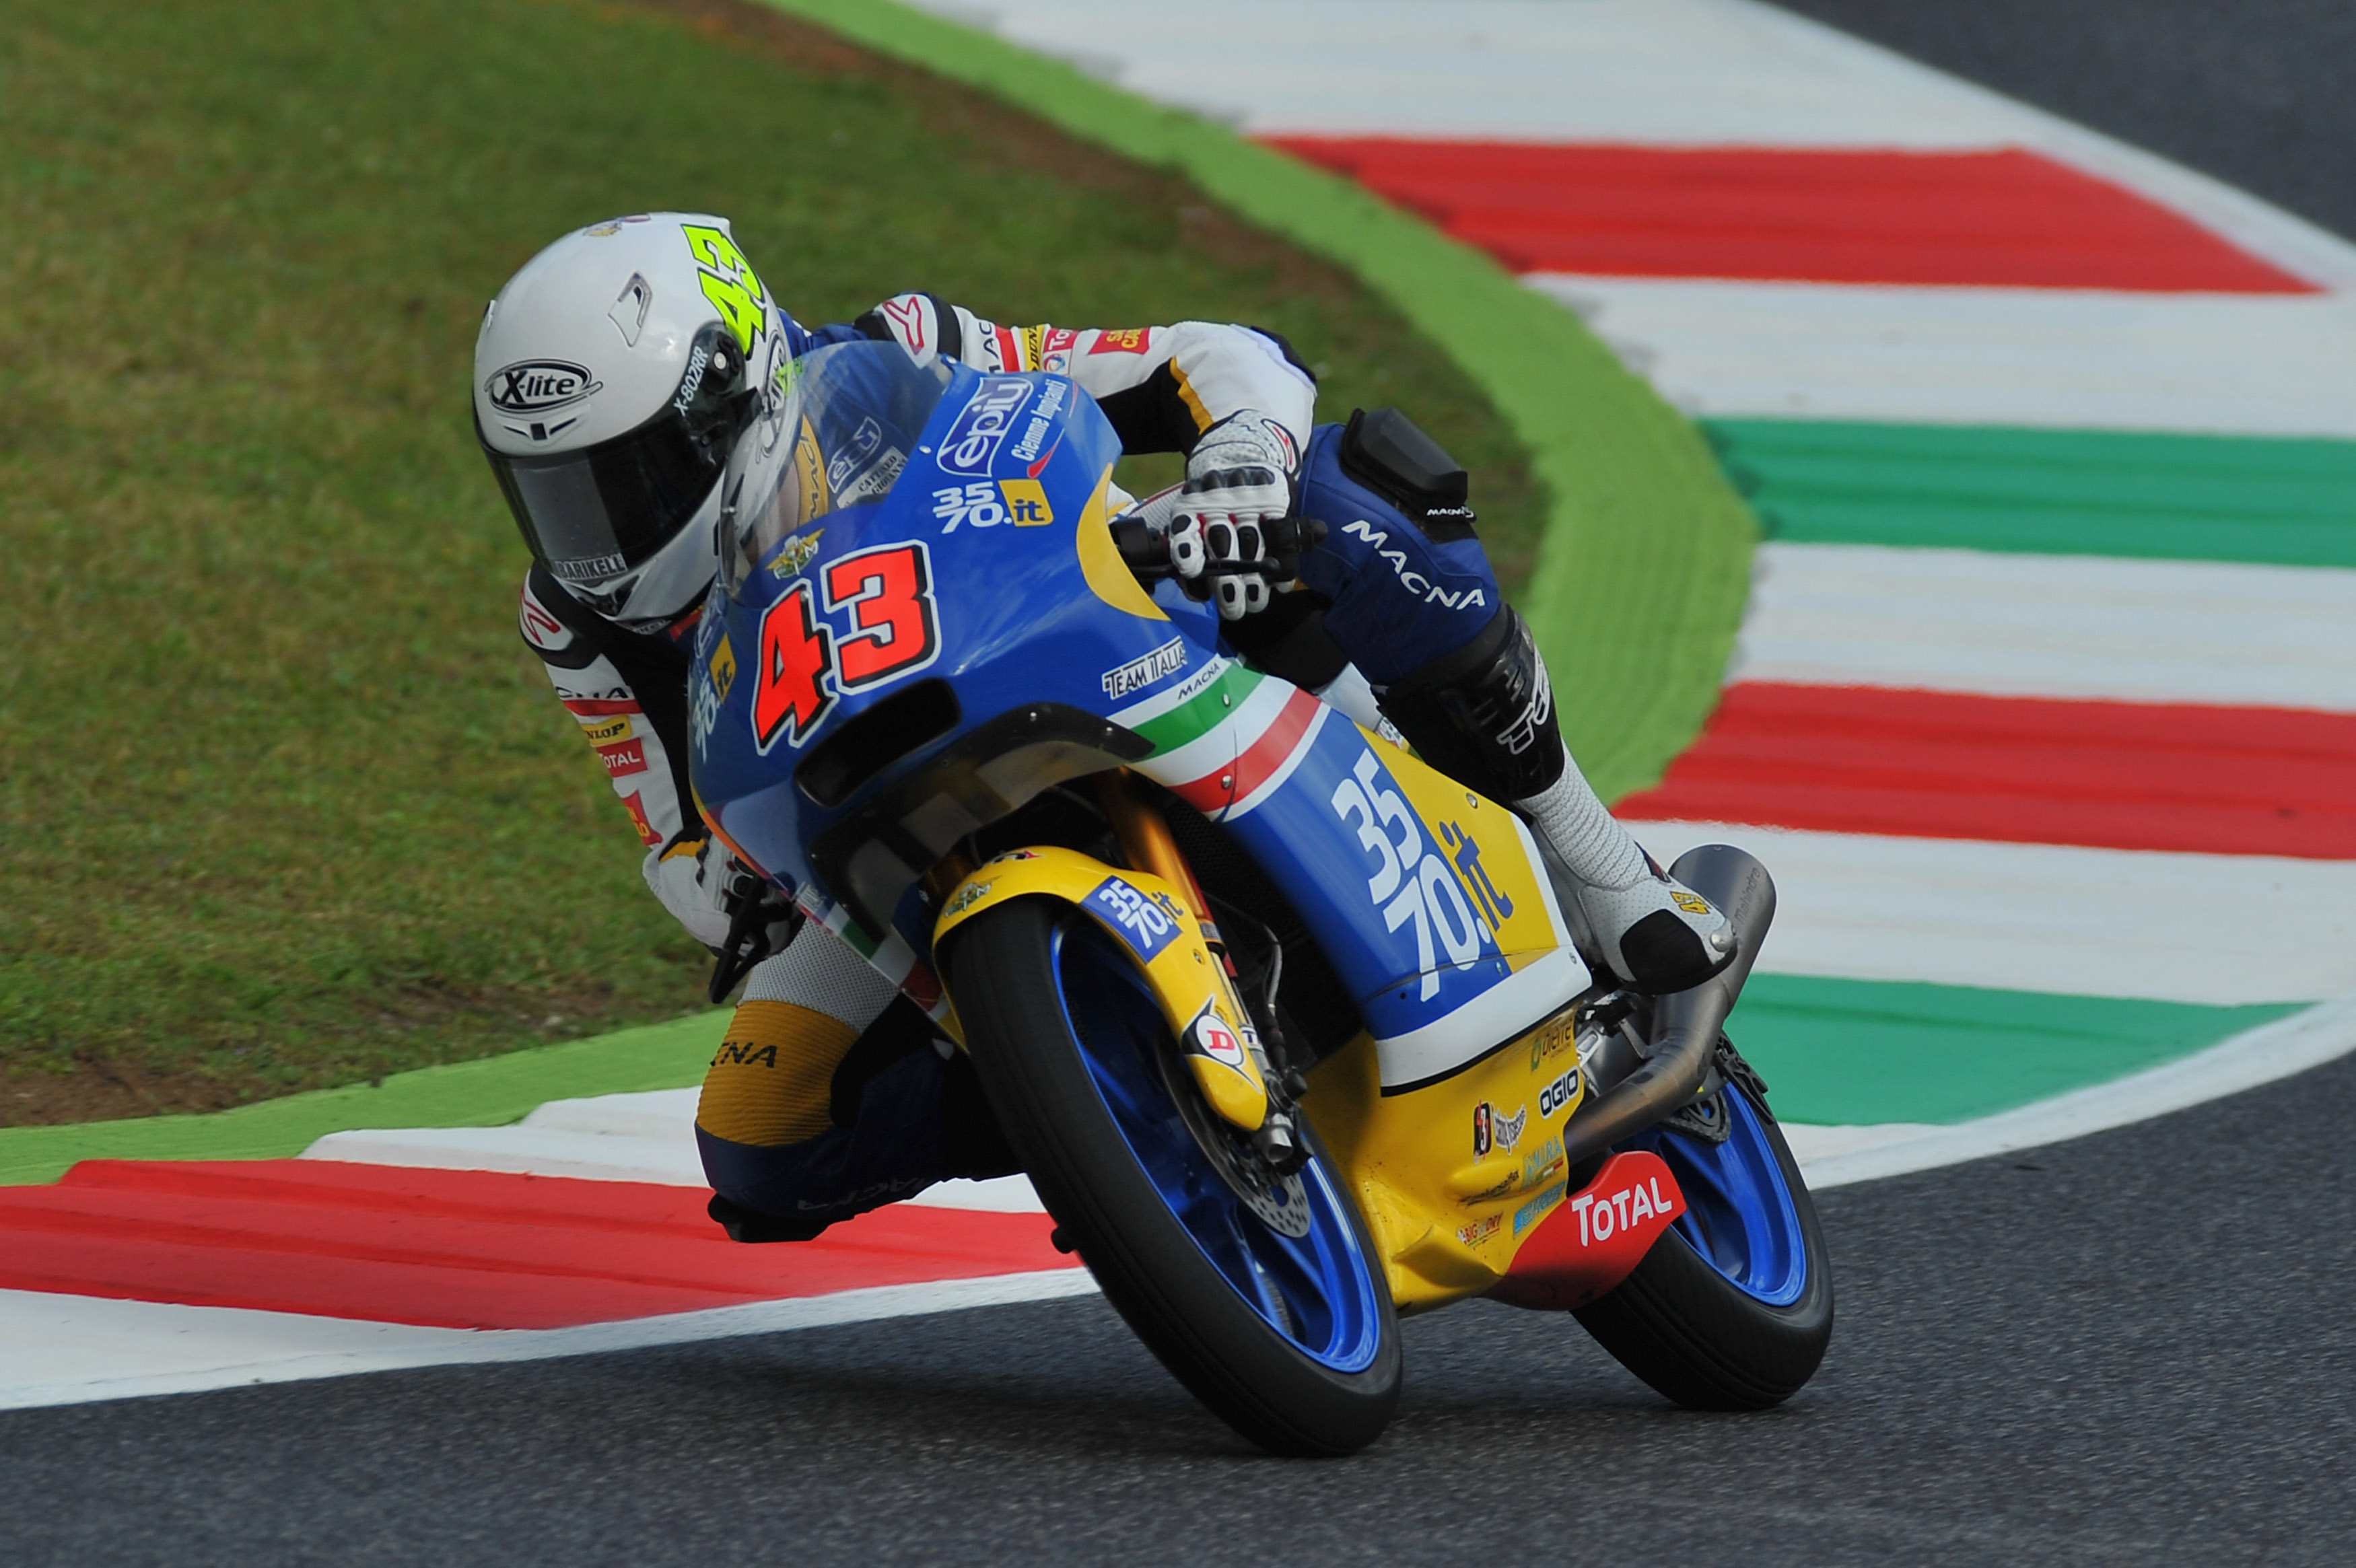 2016 3570 Team Italia during the race 06 GP of Italy in Mugello Circuit in Scarperia near Florence (Italy) during the 2016 Season of World Motorcycle Championship 2016 © 2016 mirco lazzari mircolazzari@yahoo.it